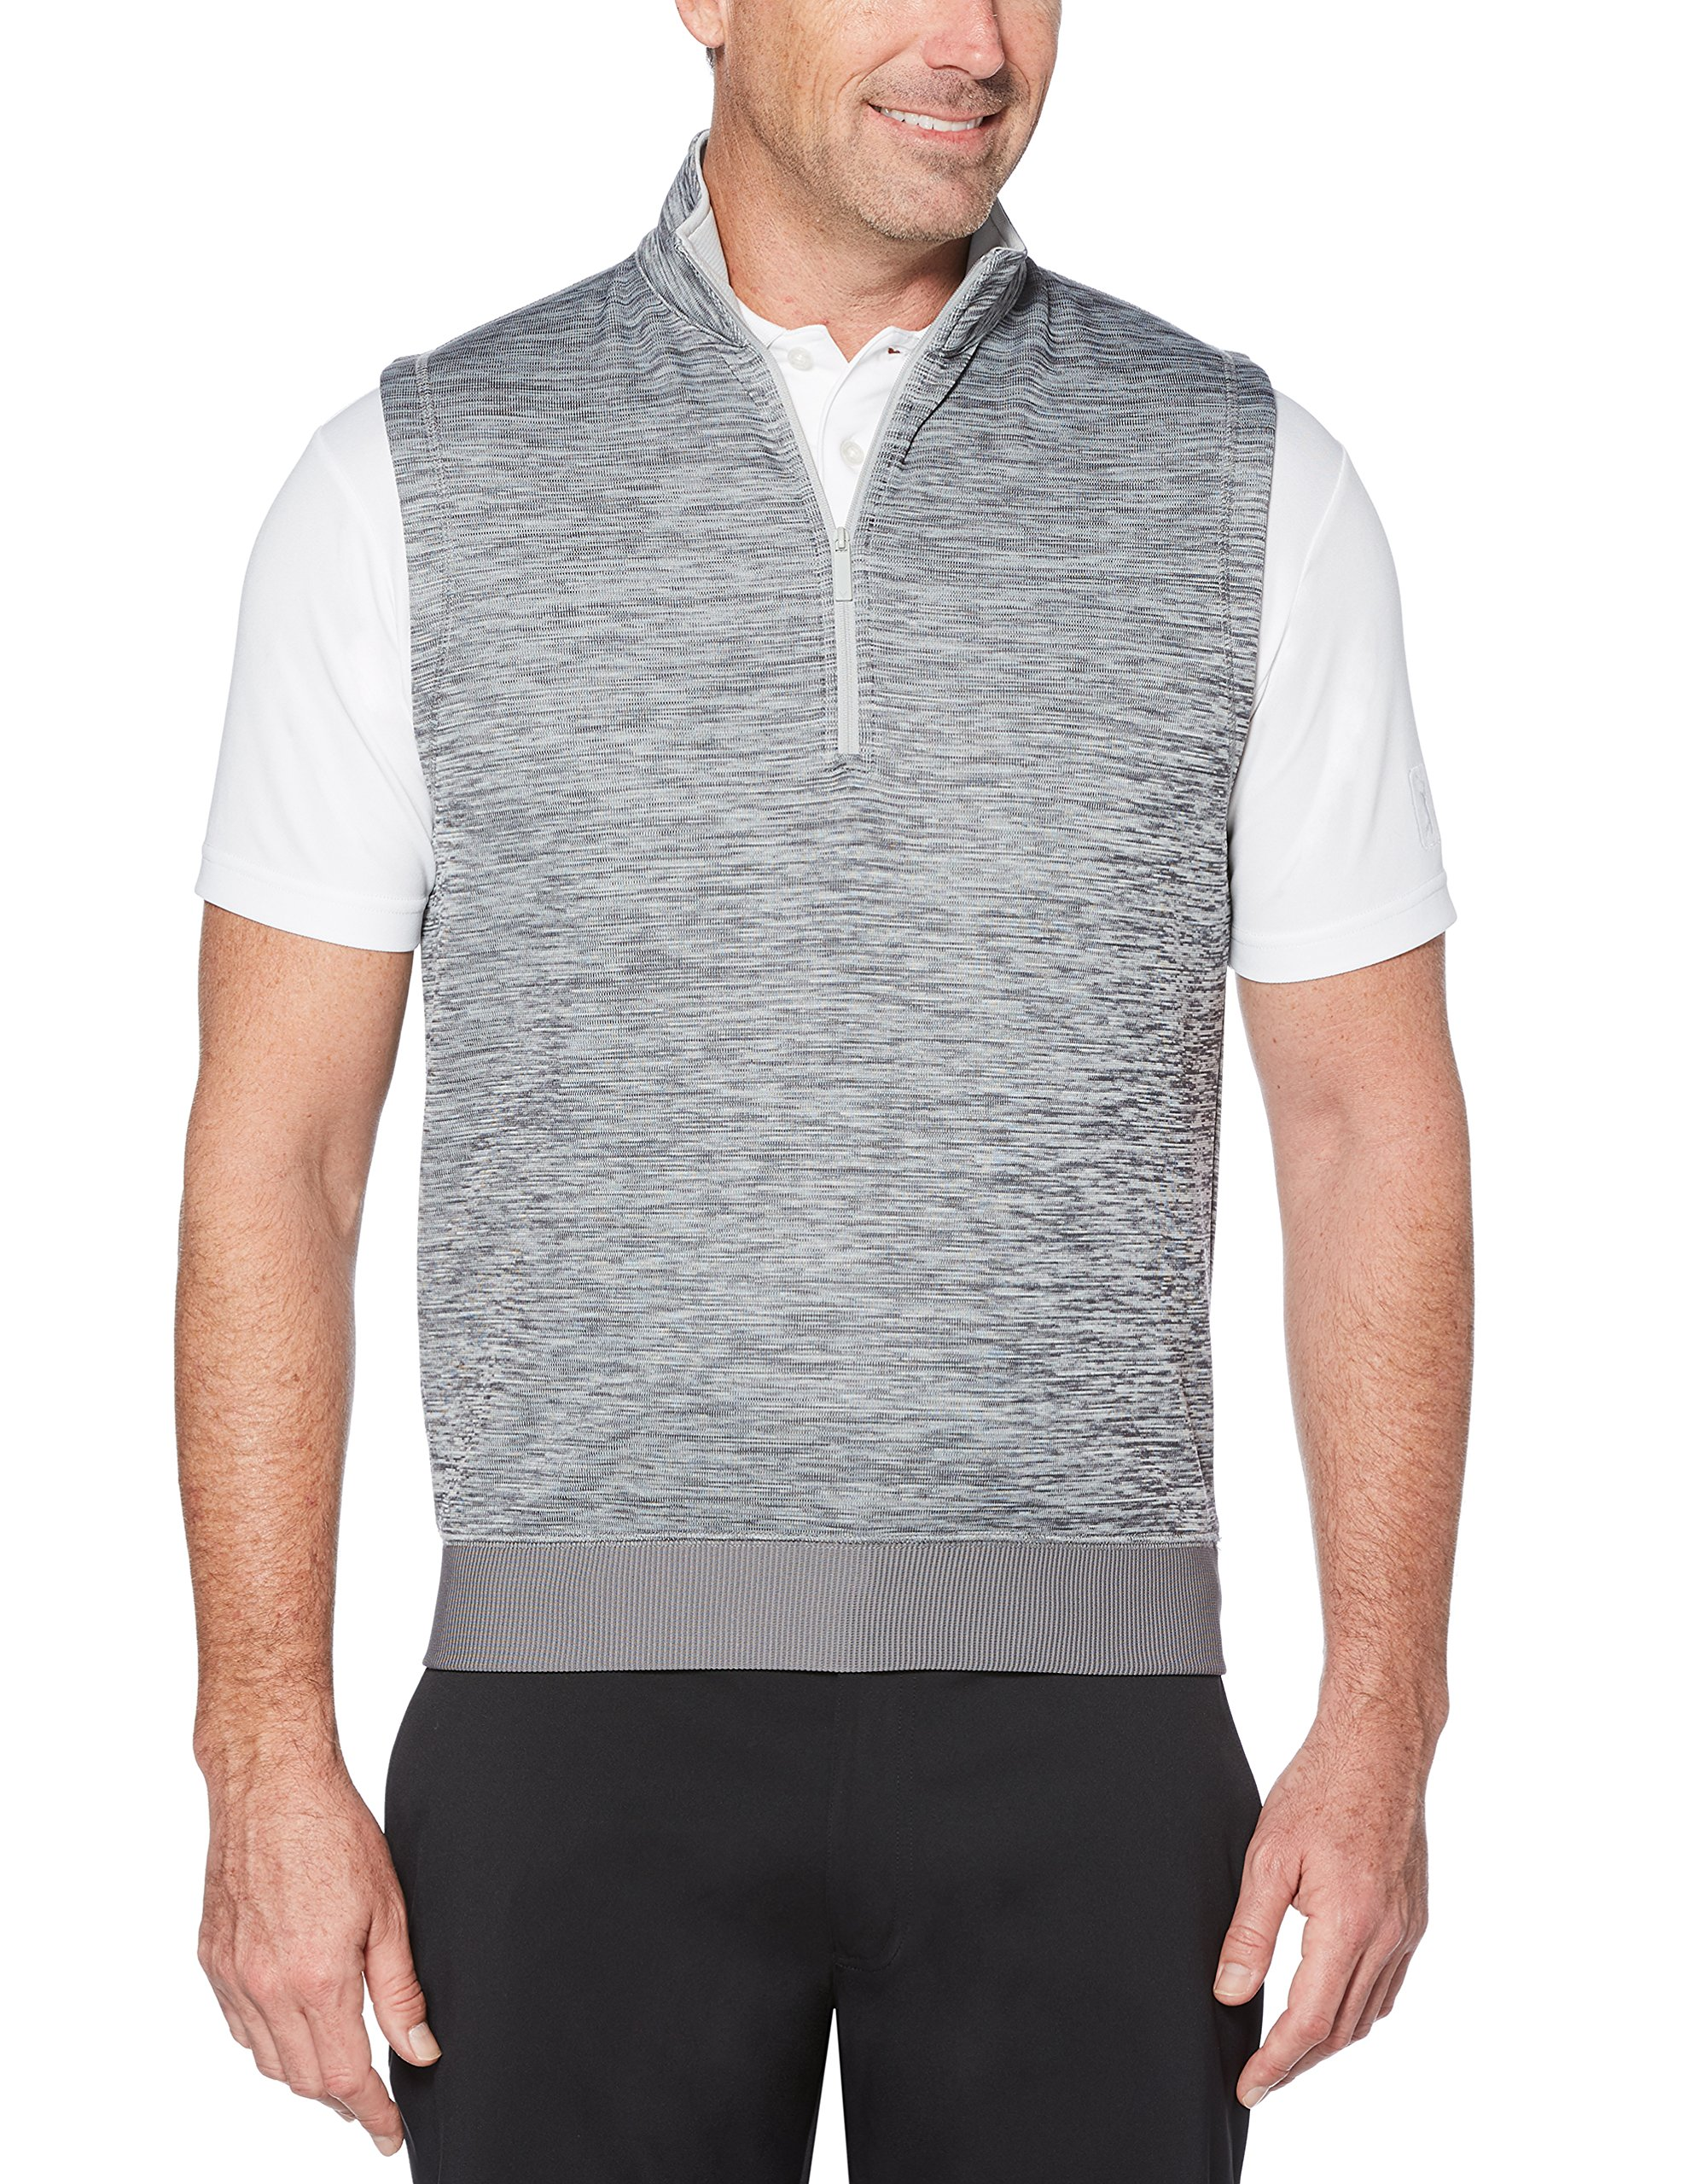 Callaway Men's Water Repellent 1/4 Zip Golf Vest, Medium Grey Heather, 2X-Large by Callaway